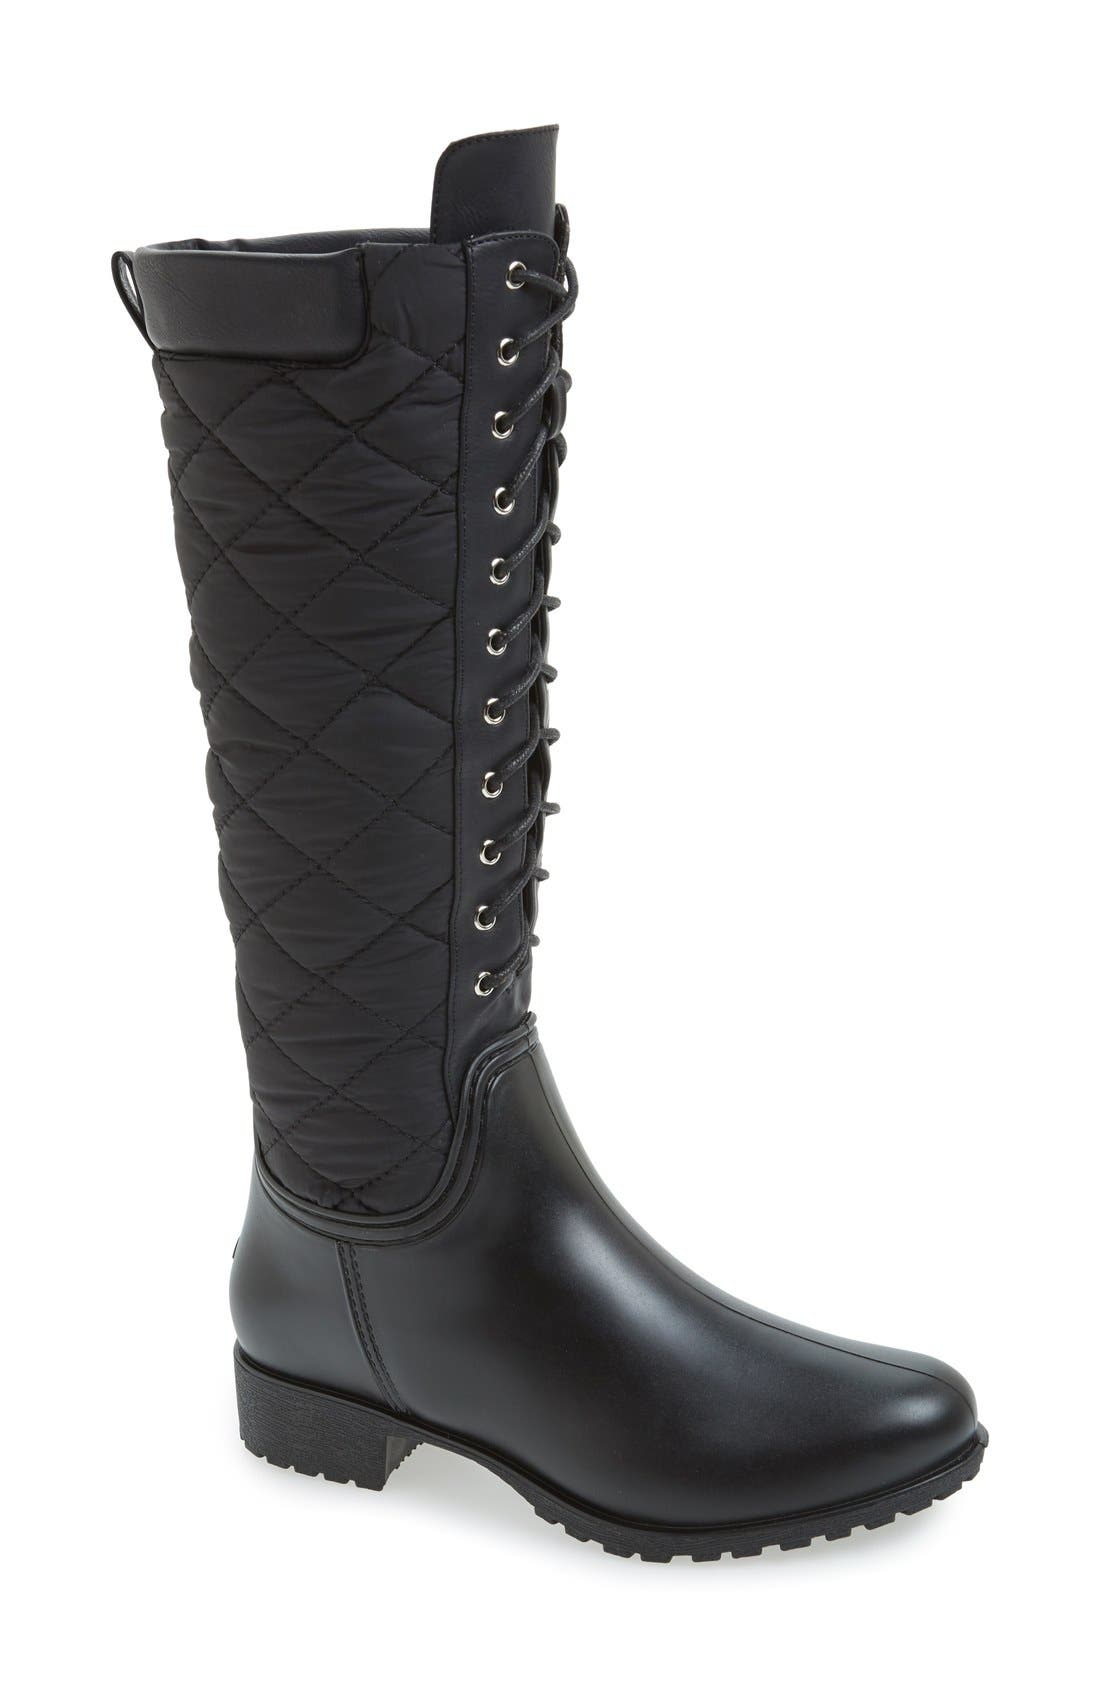 Alternate Image 1 Selected - däv 'Tofino' Quilted Tall Waterproof Rain Boot (Women)